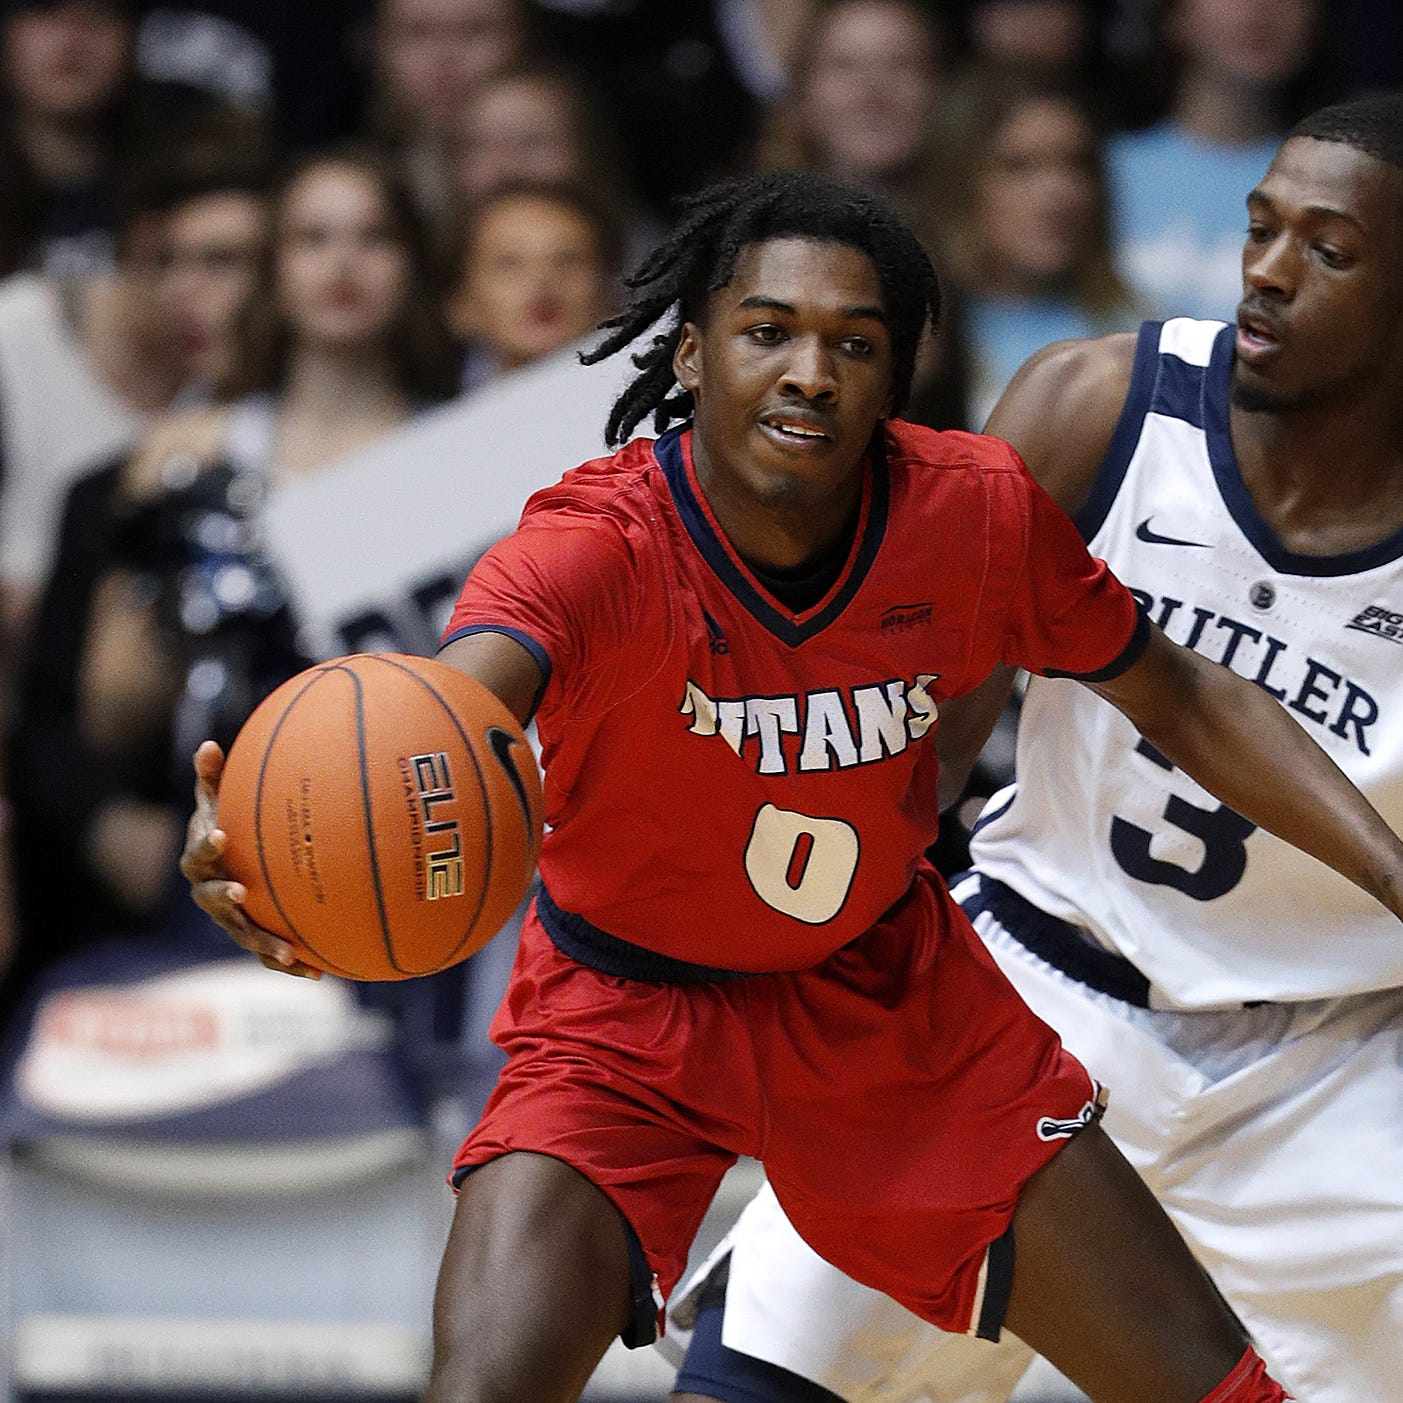 Detroit Mercy's Antoine Davis went from unknown to NCAA's leading scorer